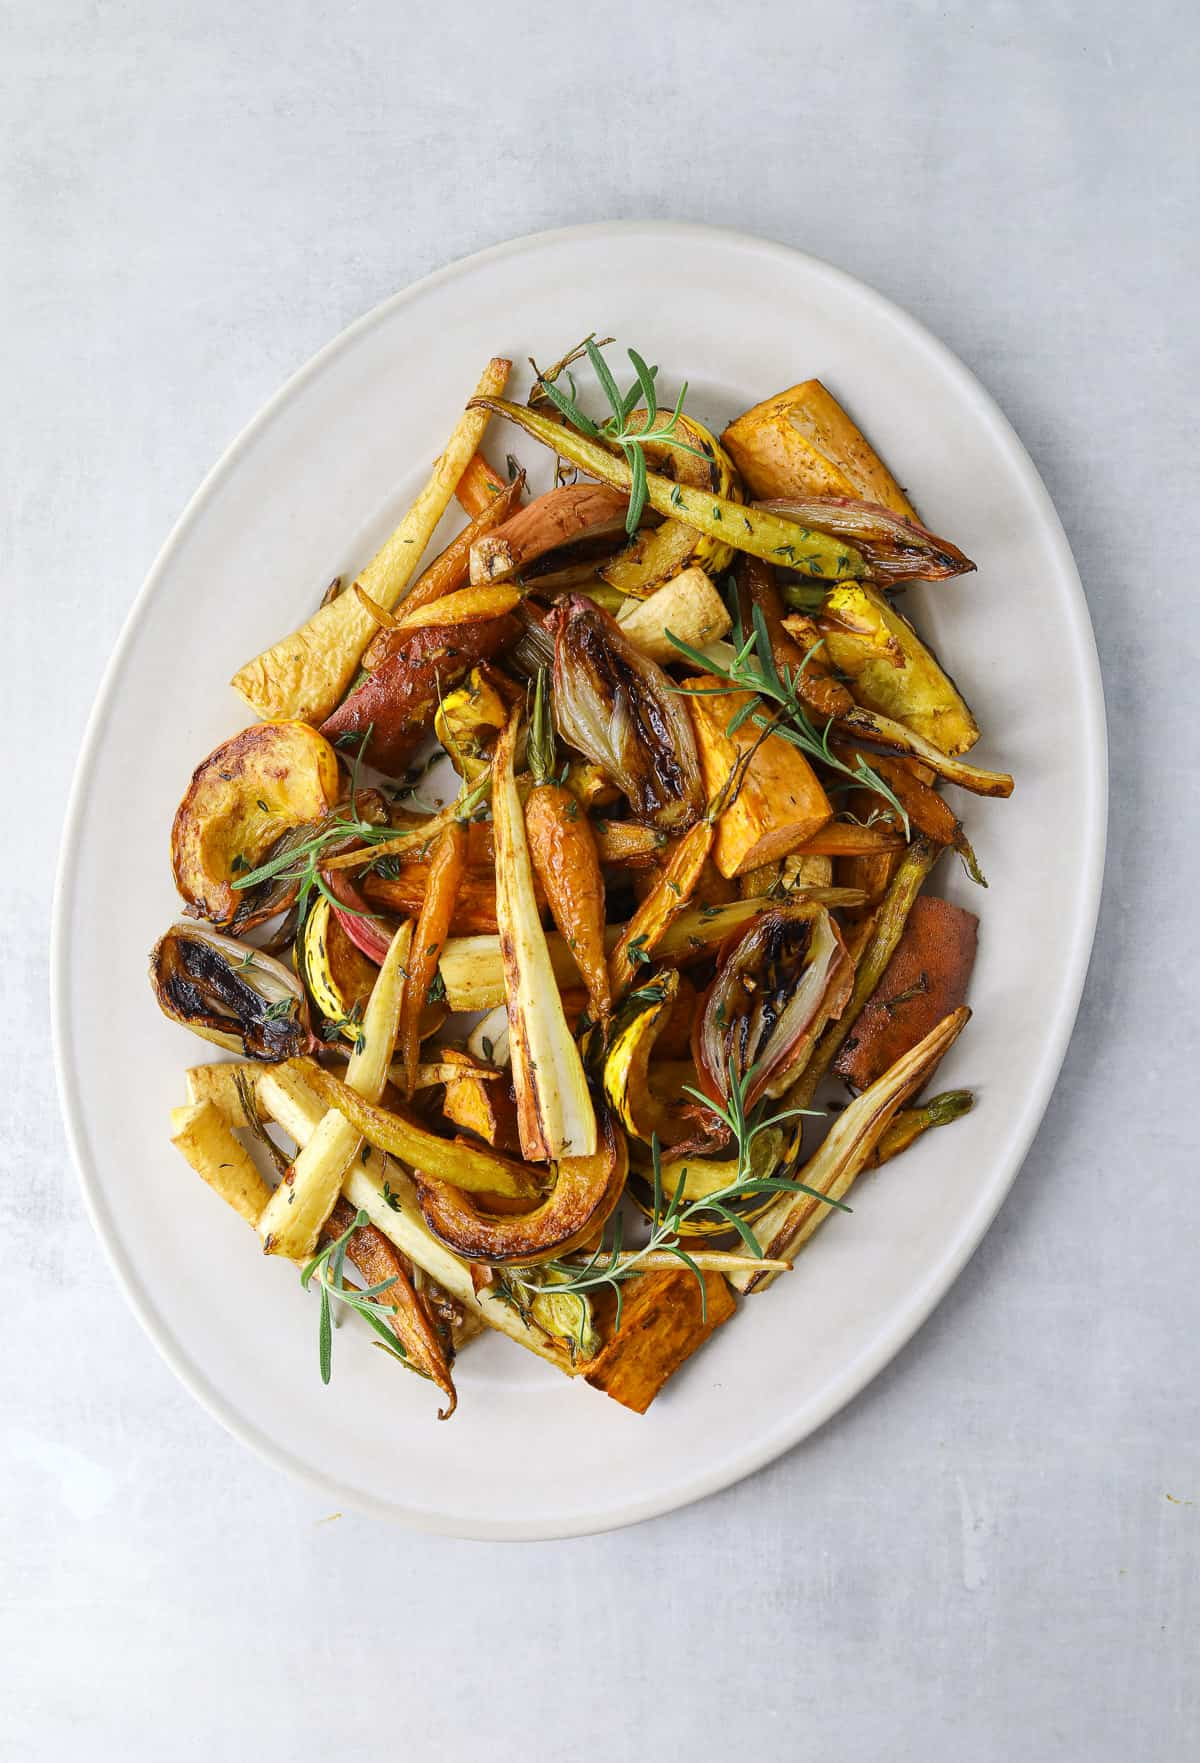 an oval platter filled with roasted root vegetables; carrots, parsnips, shallot, rosemary and thyme